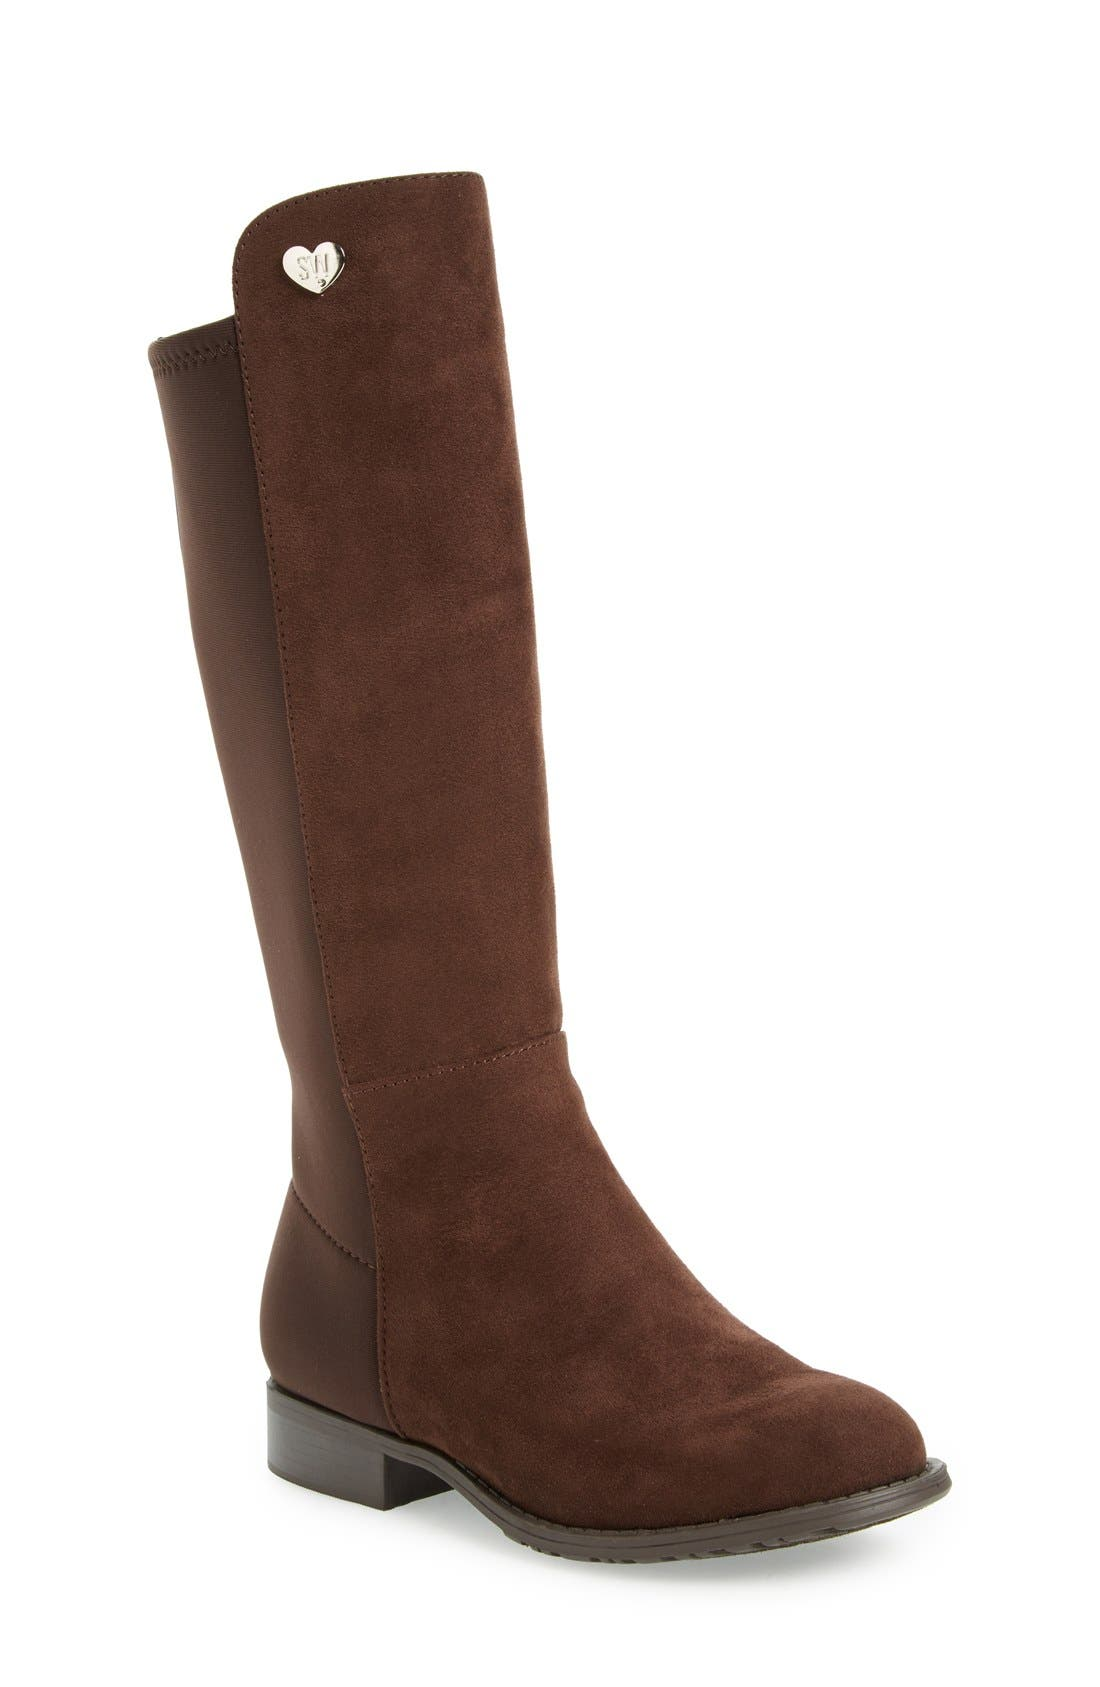 '50/50' Stretch Back Riding Boot,                         Main,                         color, Brown Leather